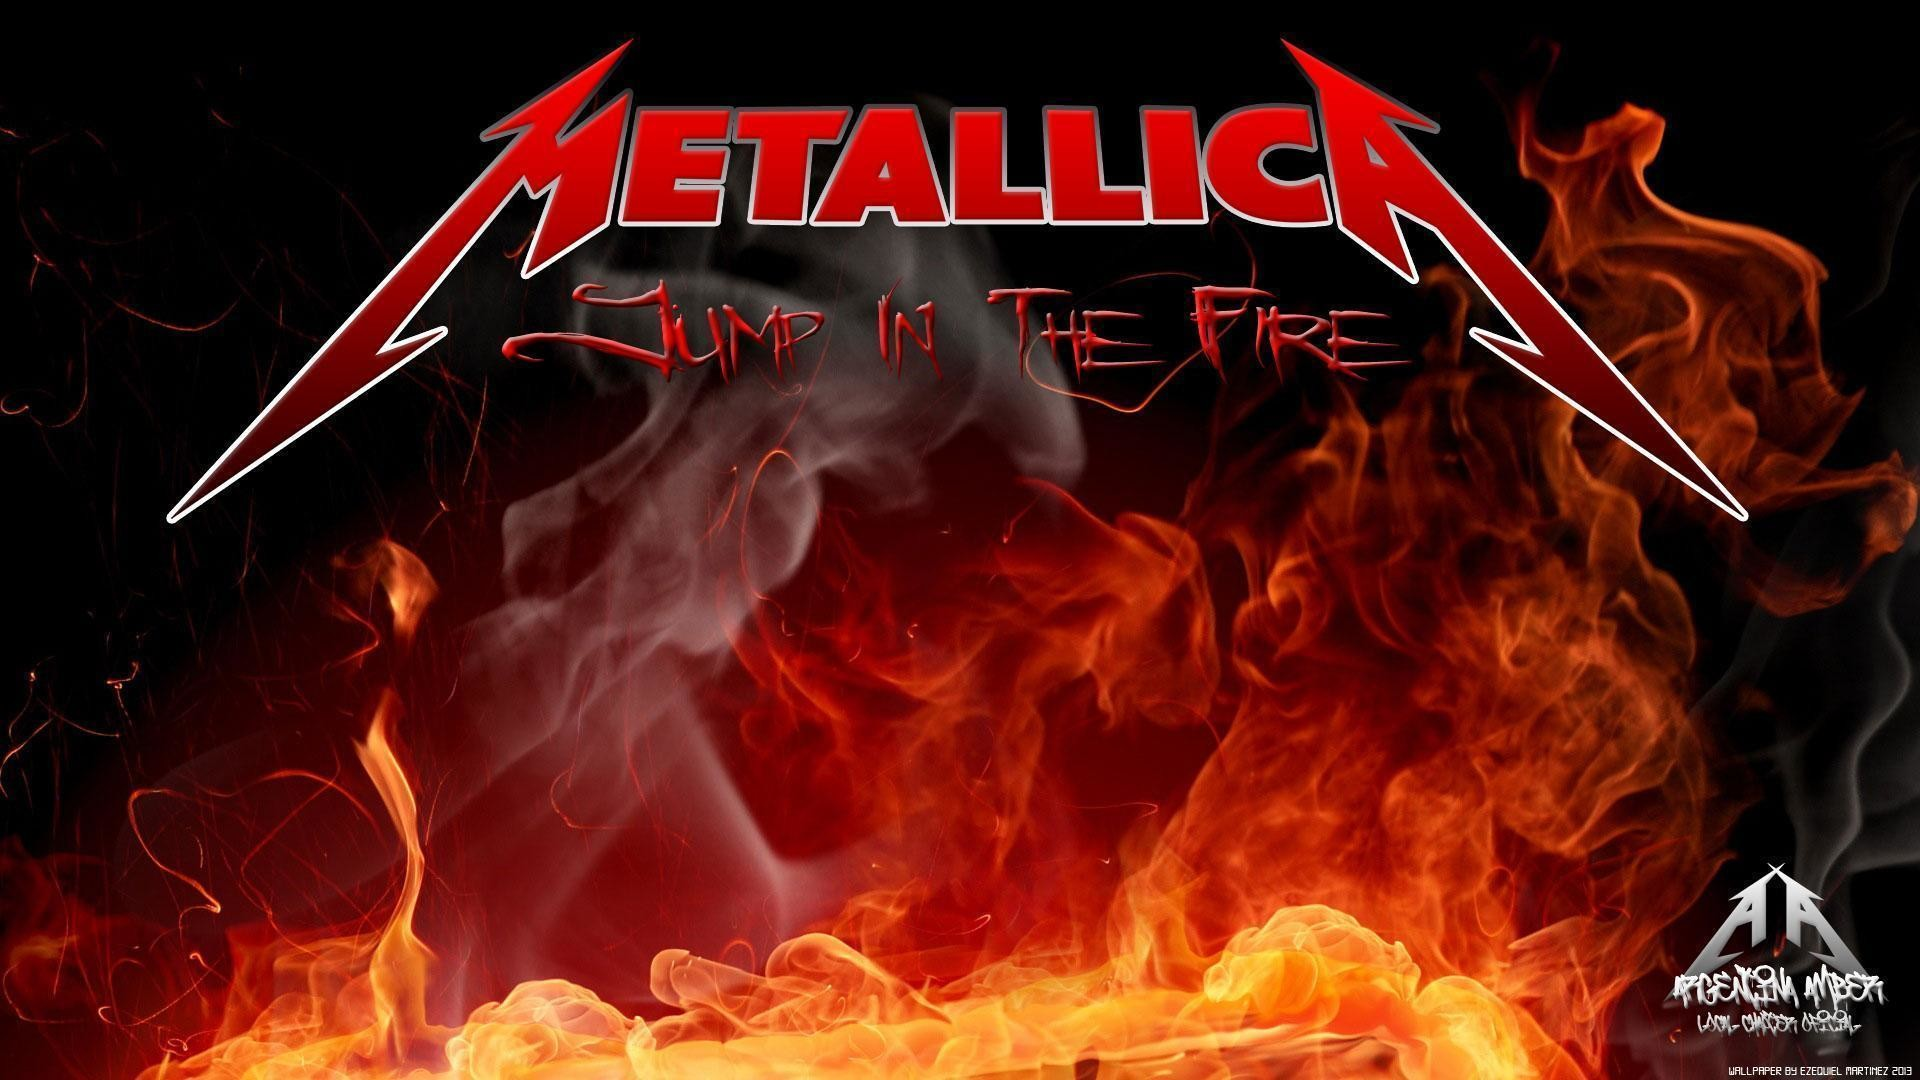 My Free Wallpapers Wallpaper Metallica Master of Puppets – Polyvore